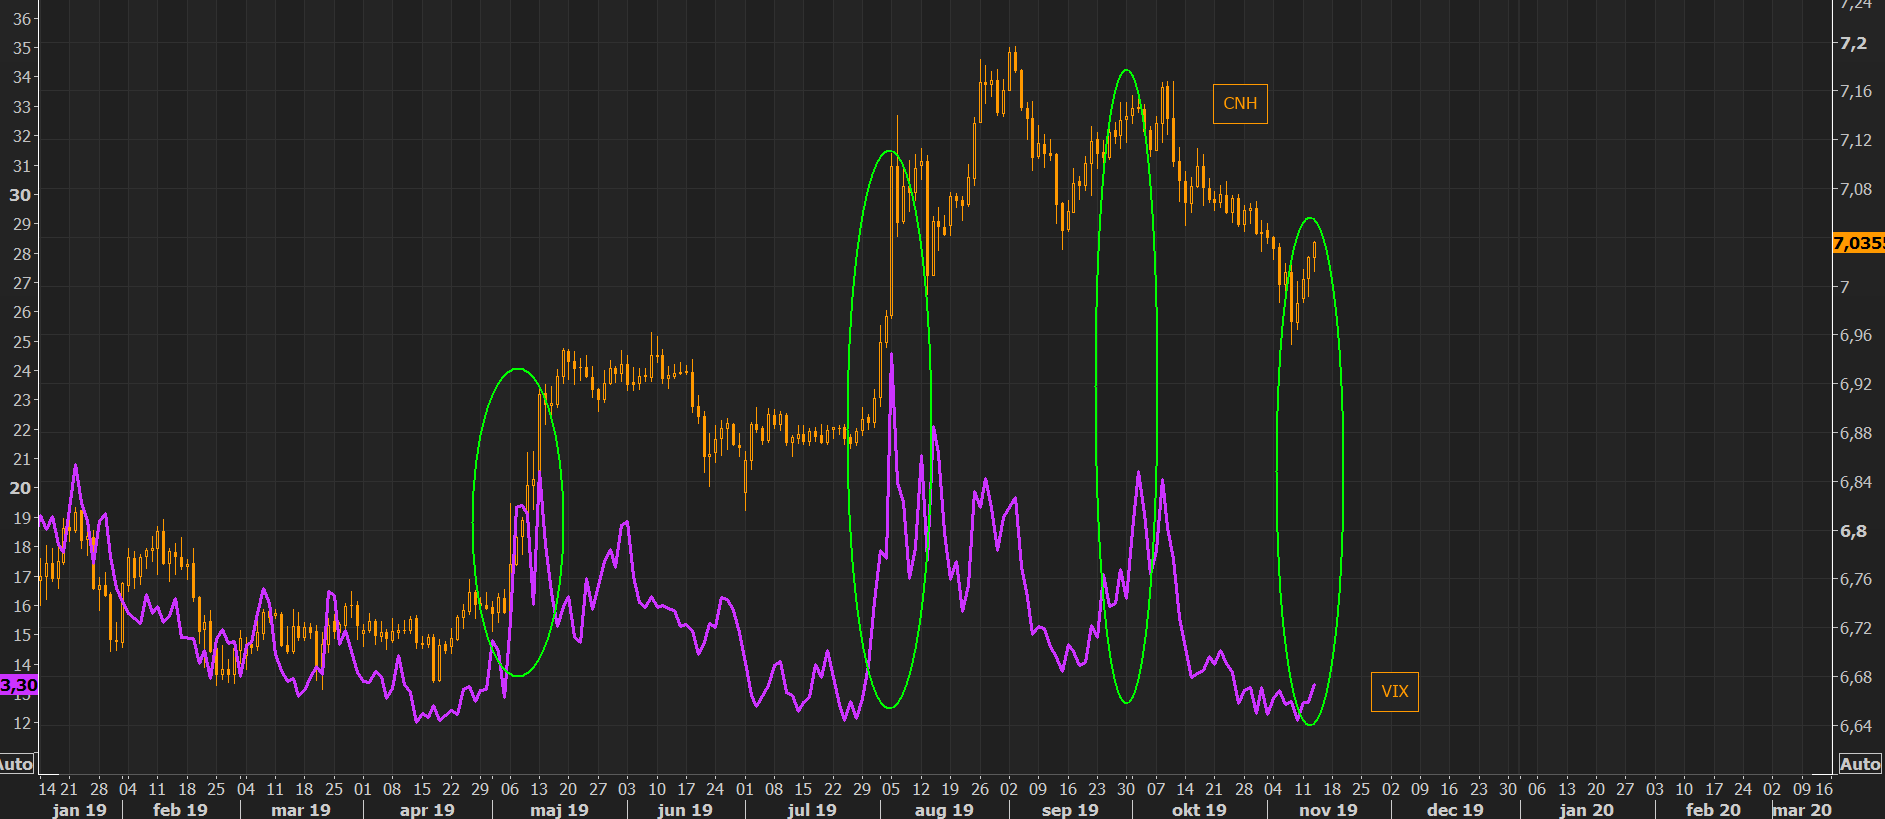 VIX loves weakening Yuan